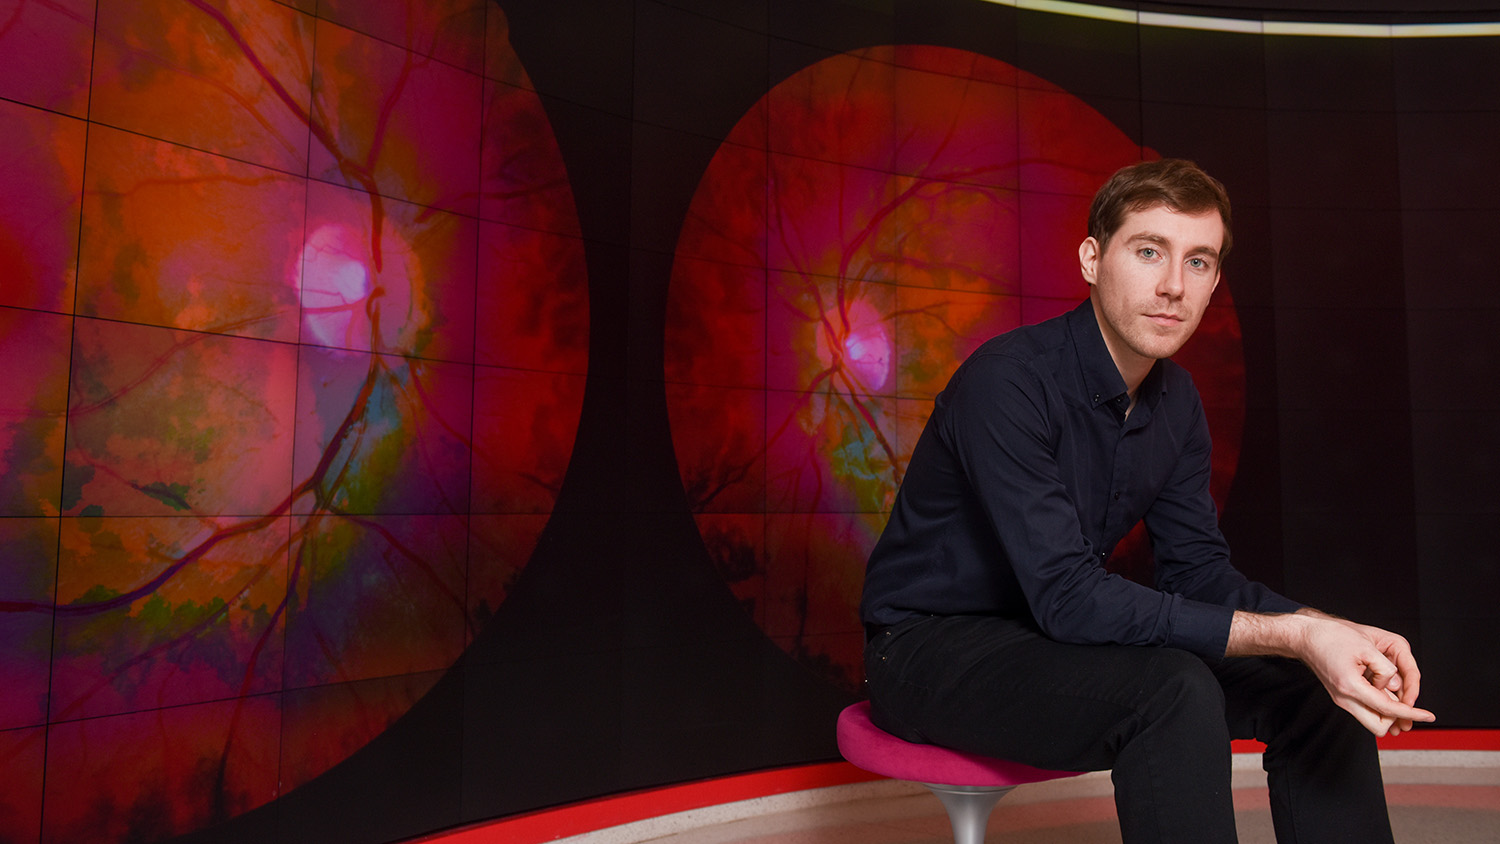 Tim Prudhomme sits in front a screen that displays retina images.